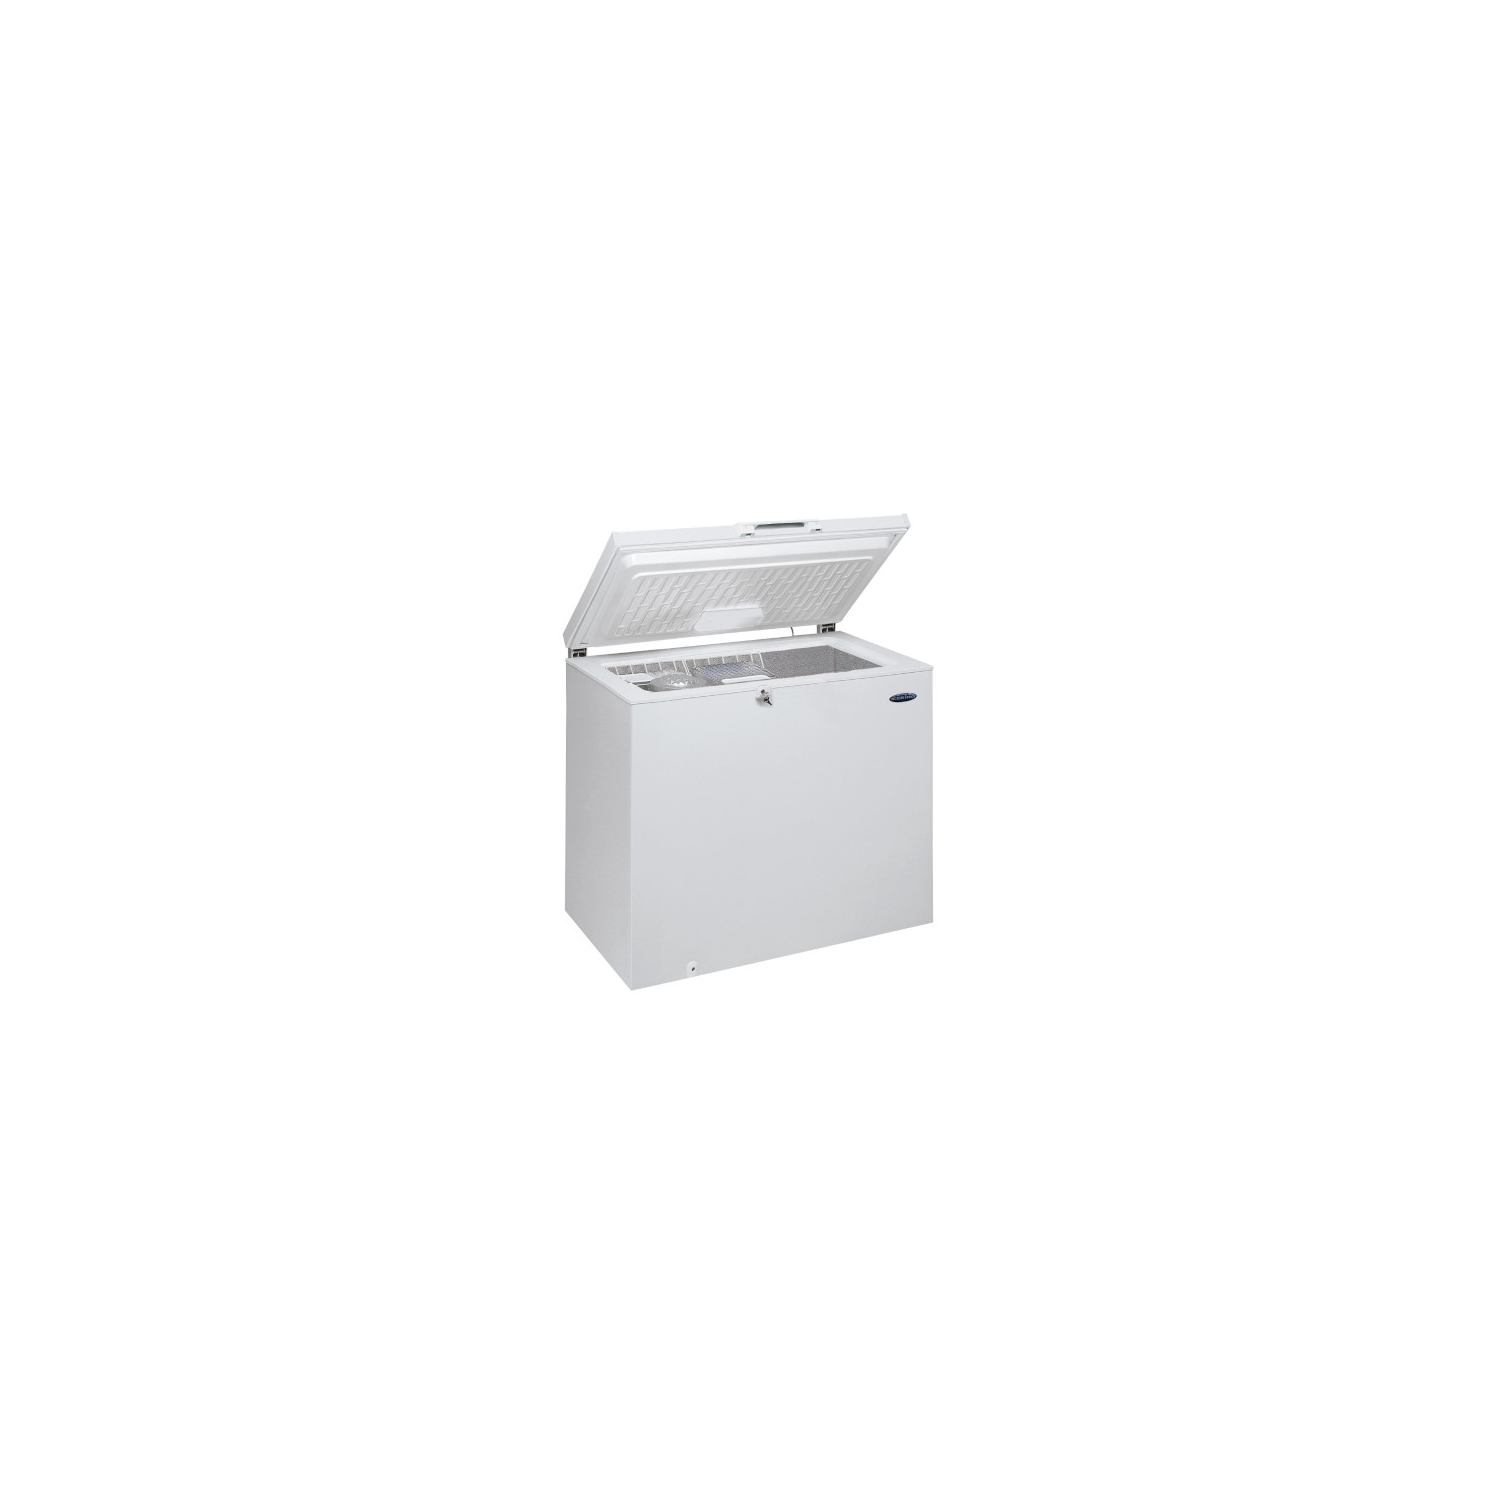 Iceking CF252W Chest Freezer - 1